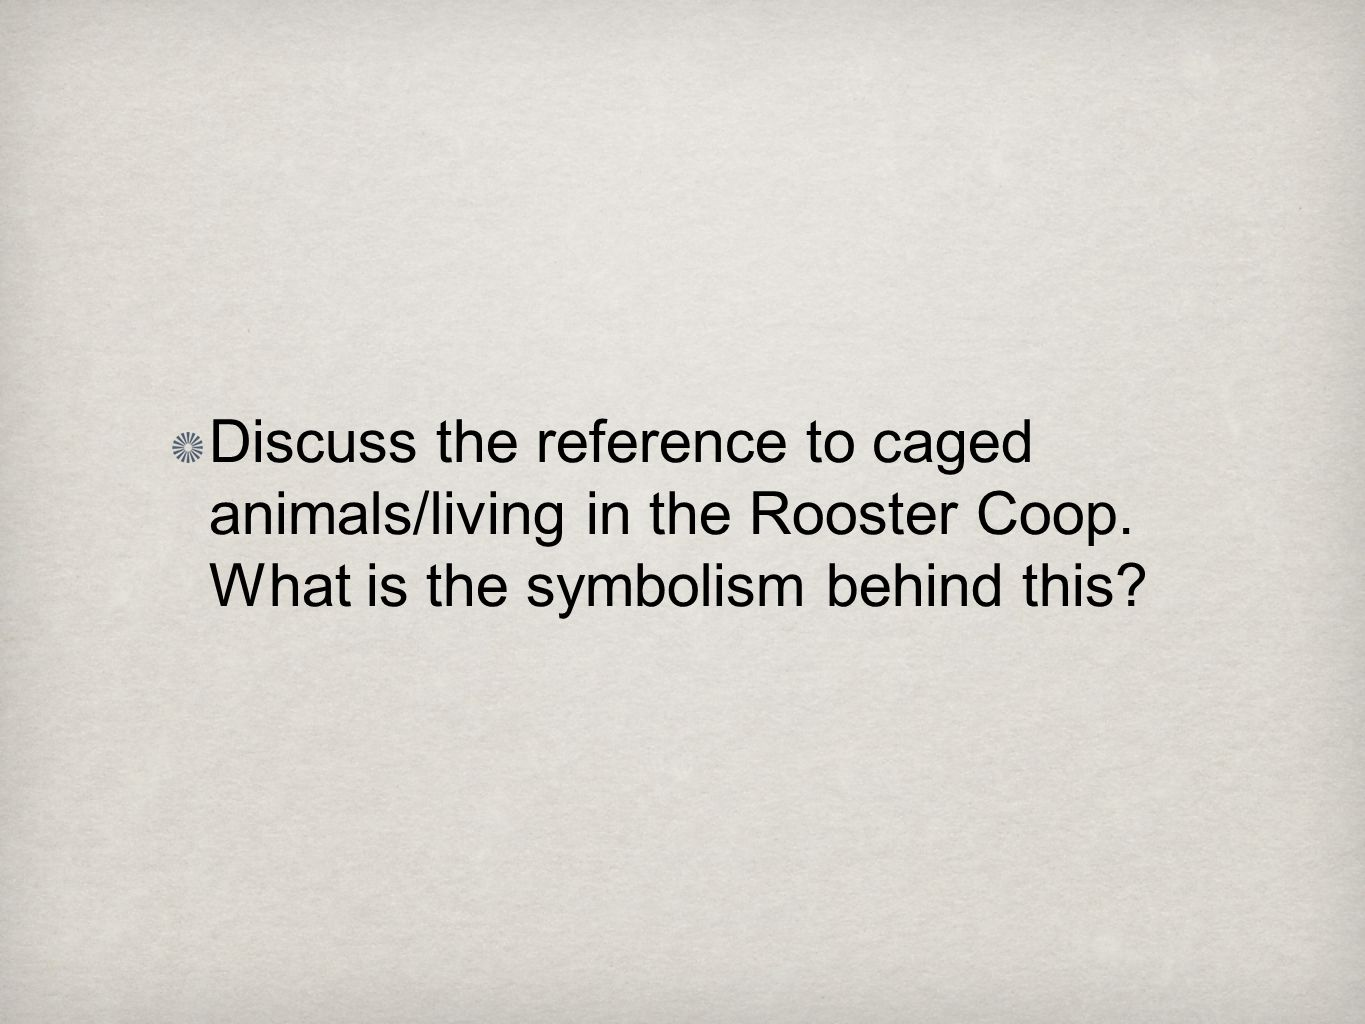 Discuss the reference to caged animals/living in the Rooster Coop.